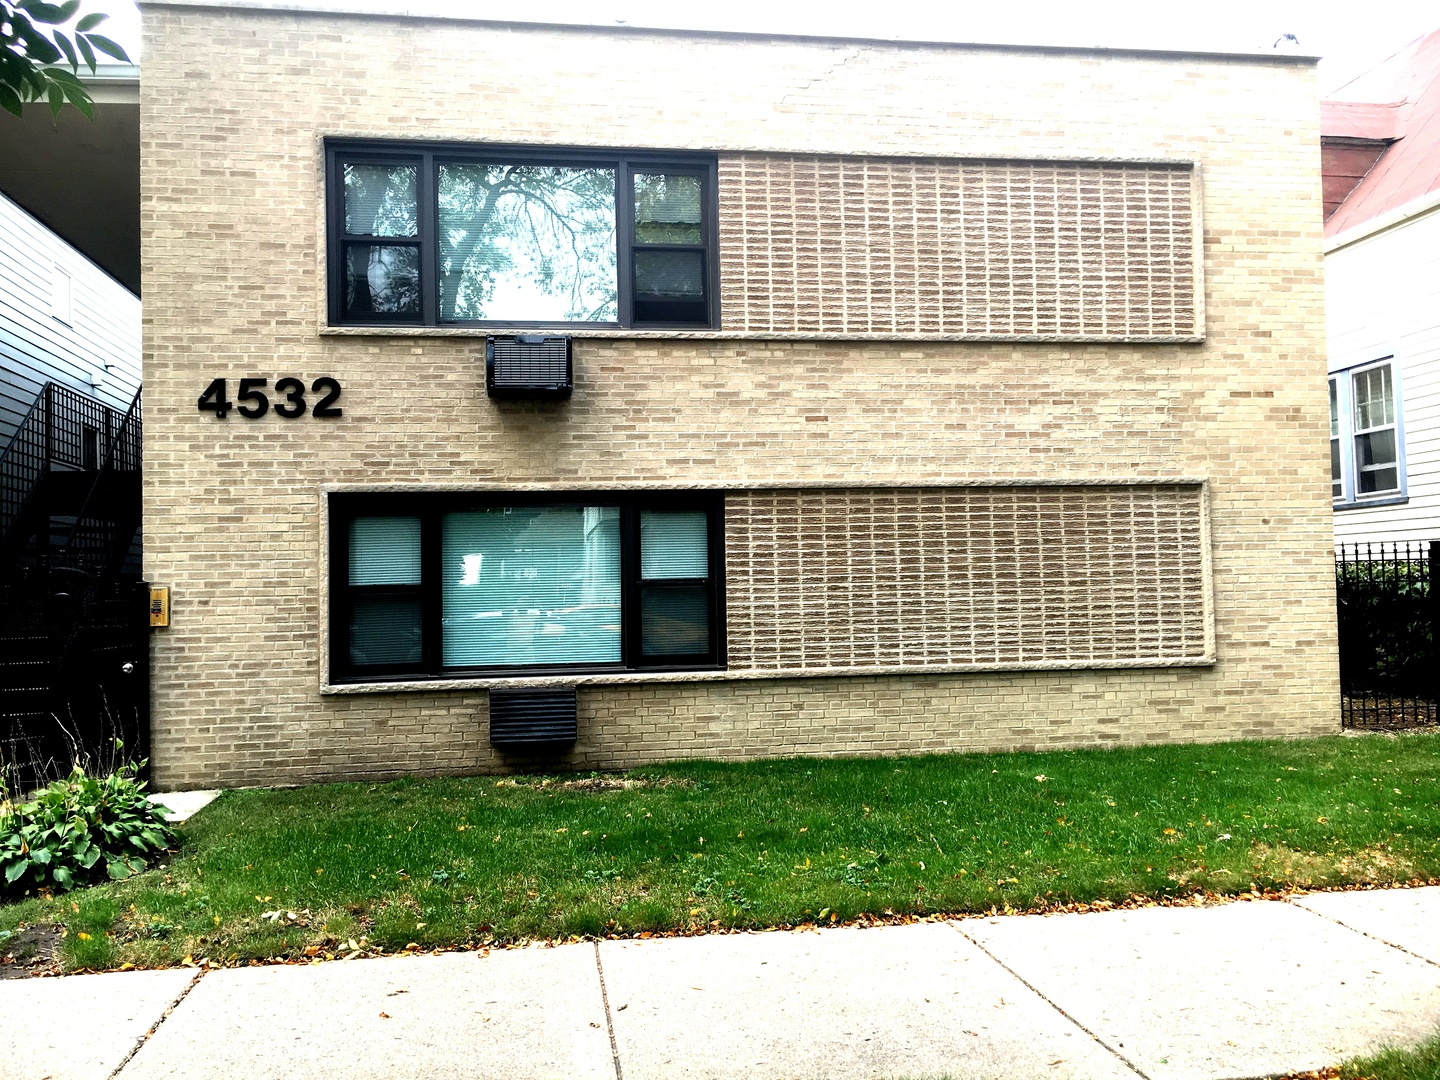 North Claremont Ave., Chicago, IL 60625